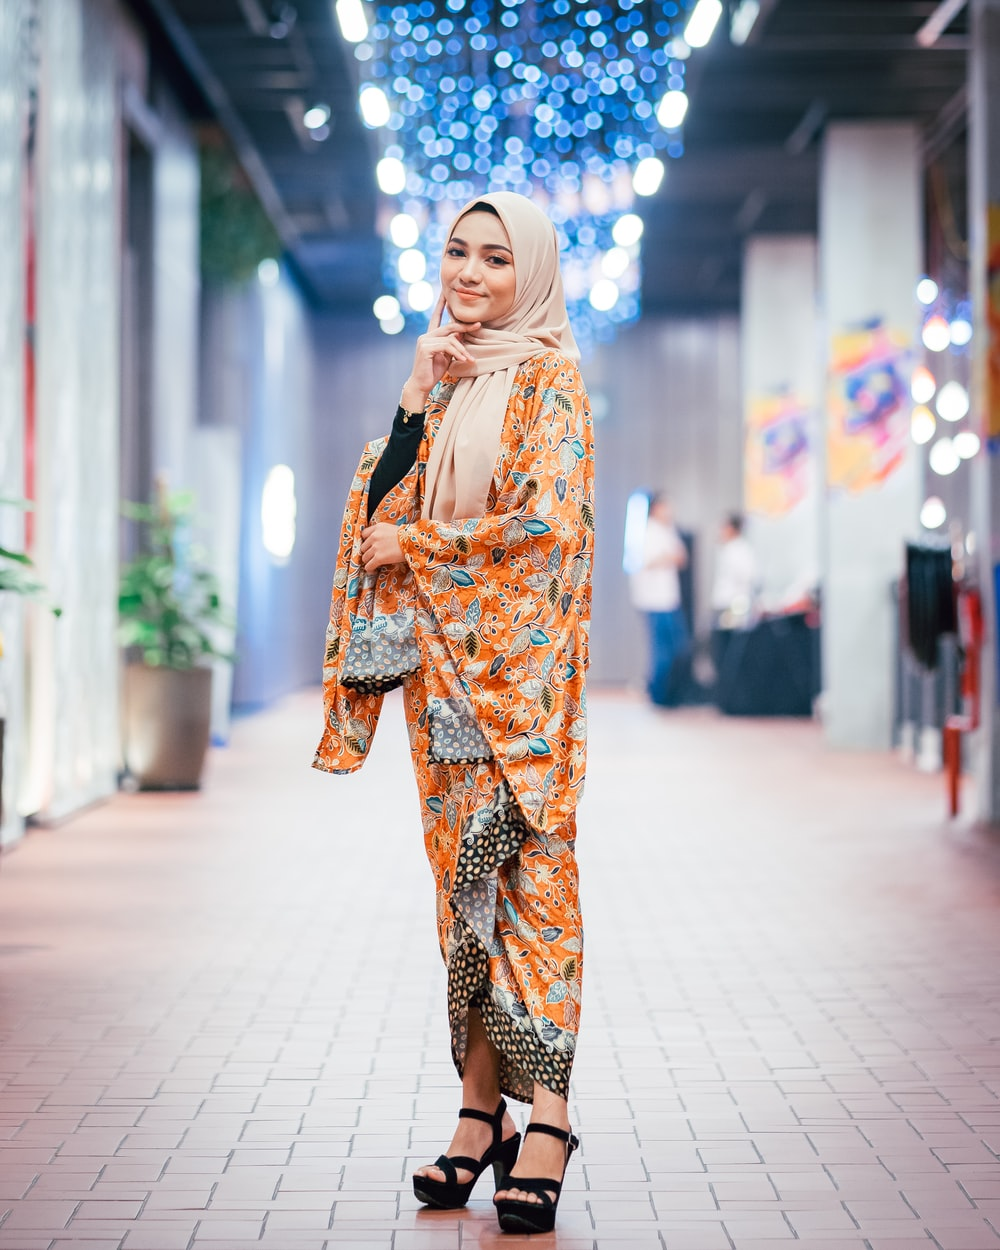 woman wearing orange and multicolored abaya dress standing and smiling